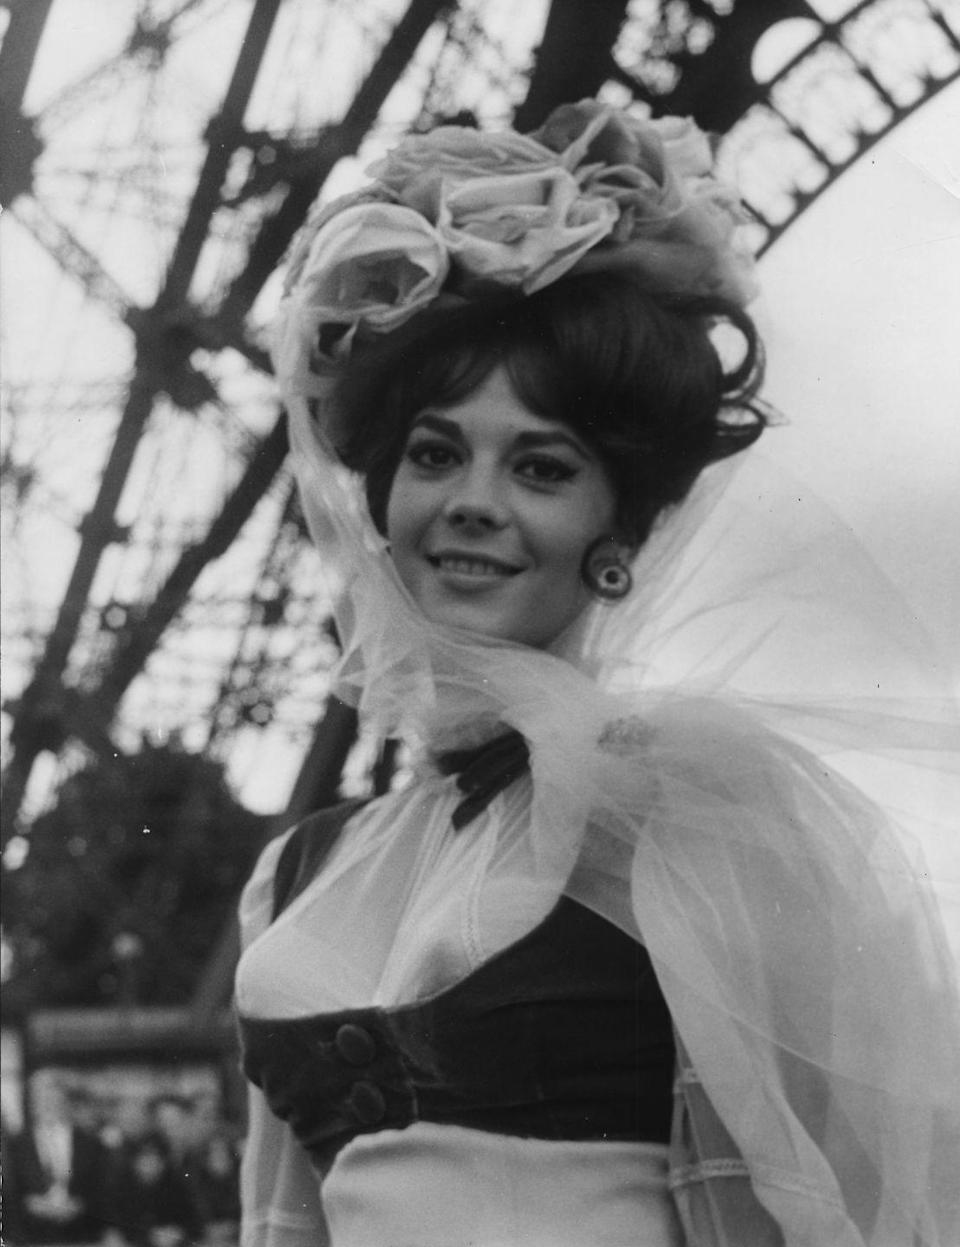 <p>The actress looks regal in a floral headpiece on the set of her hit comedy, <em>The Great Race</em>.</p>